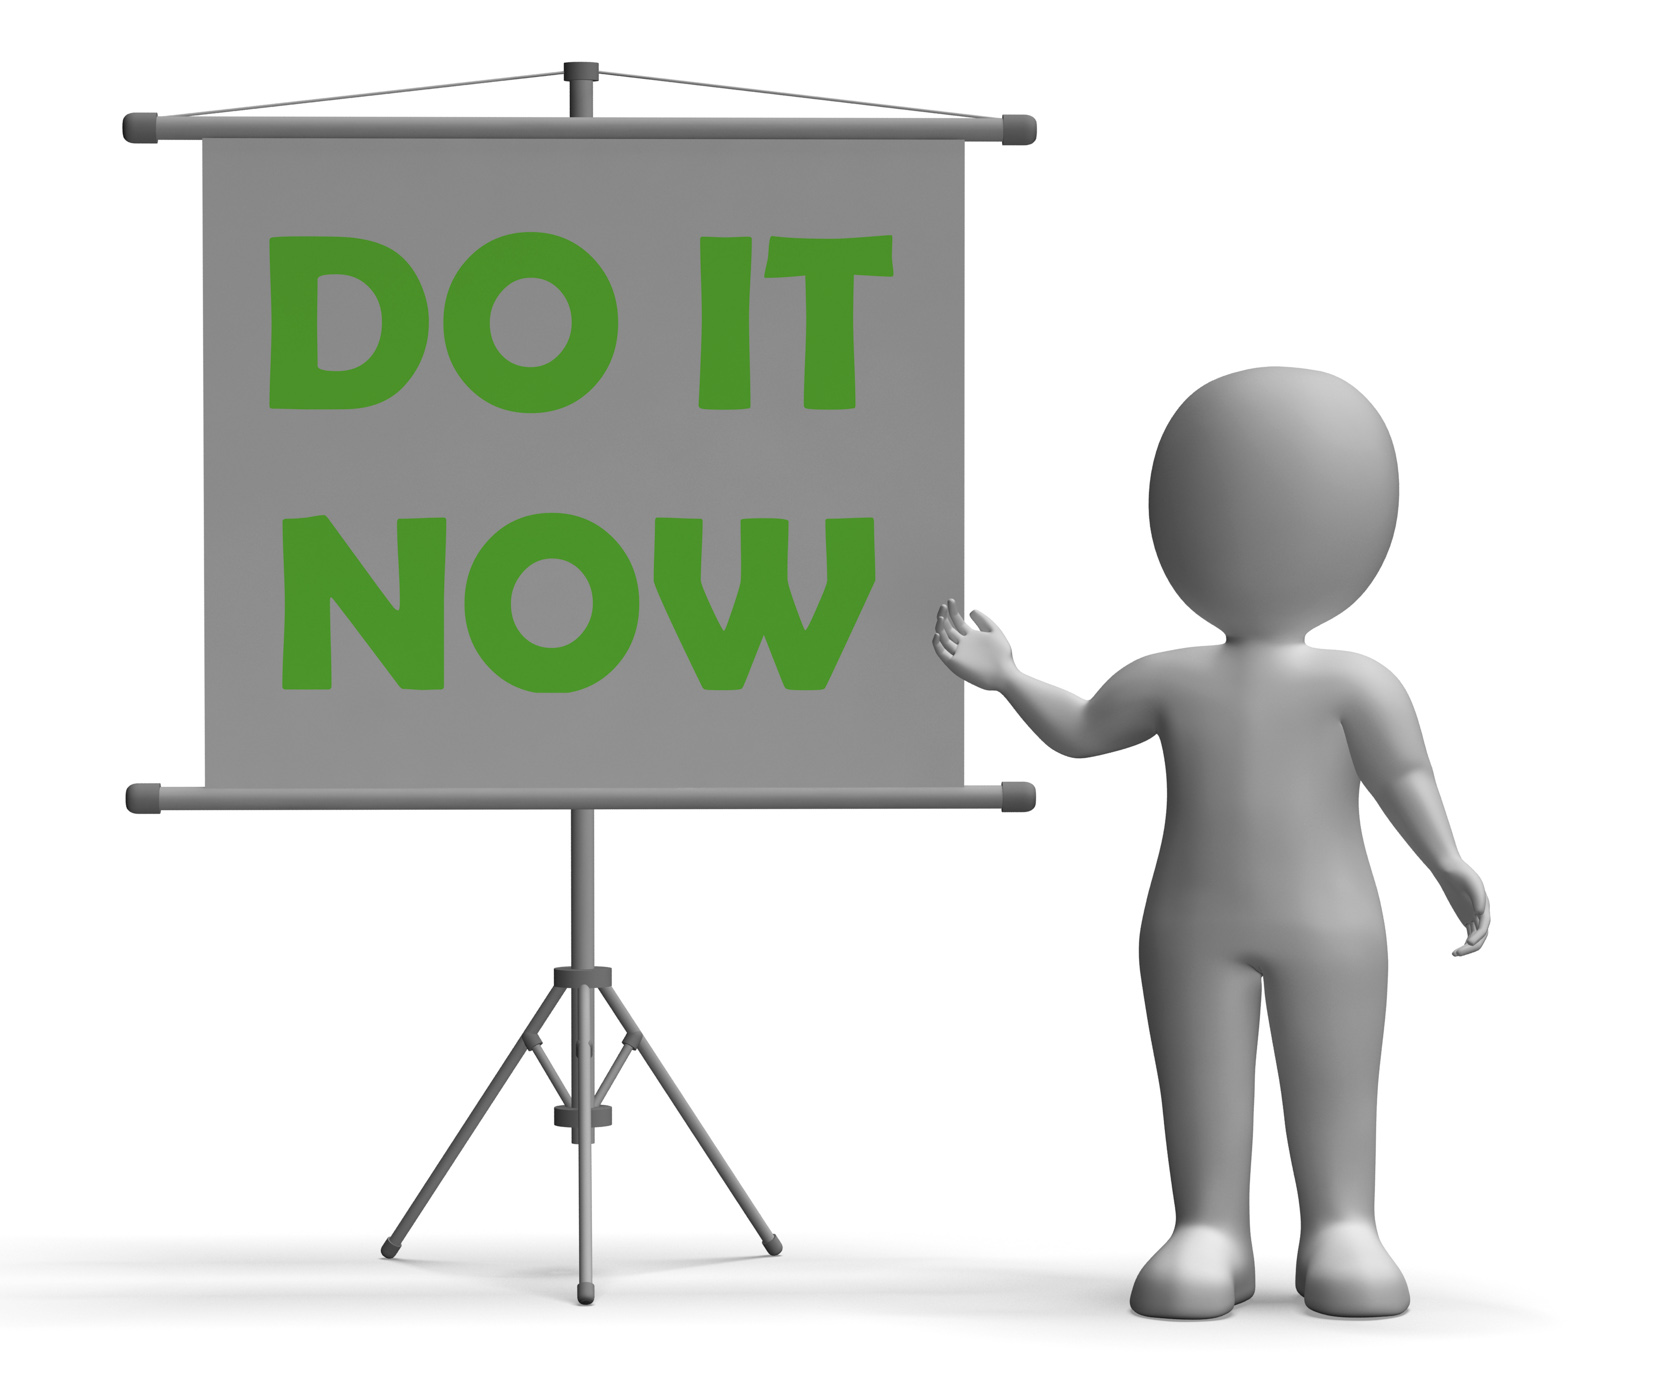 Do it now board shows giving advice photo